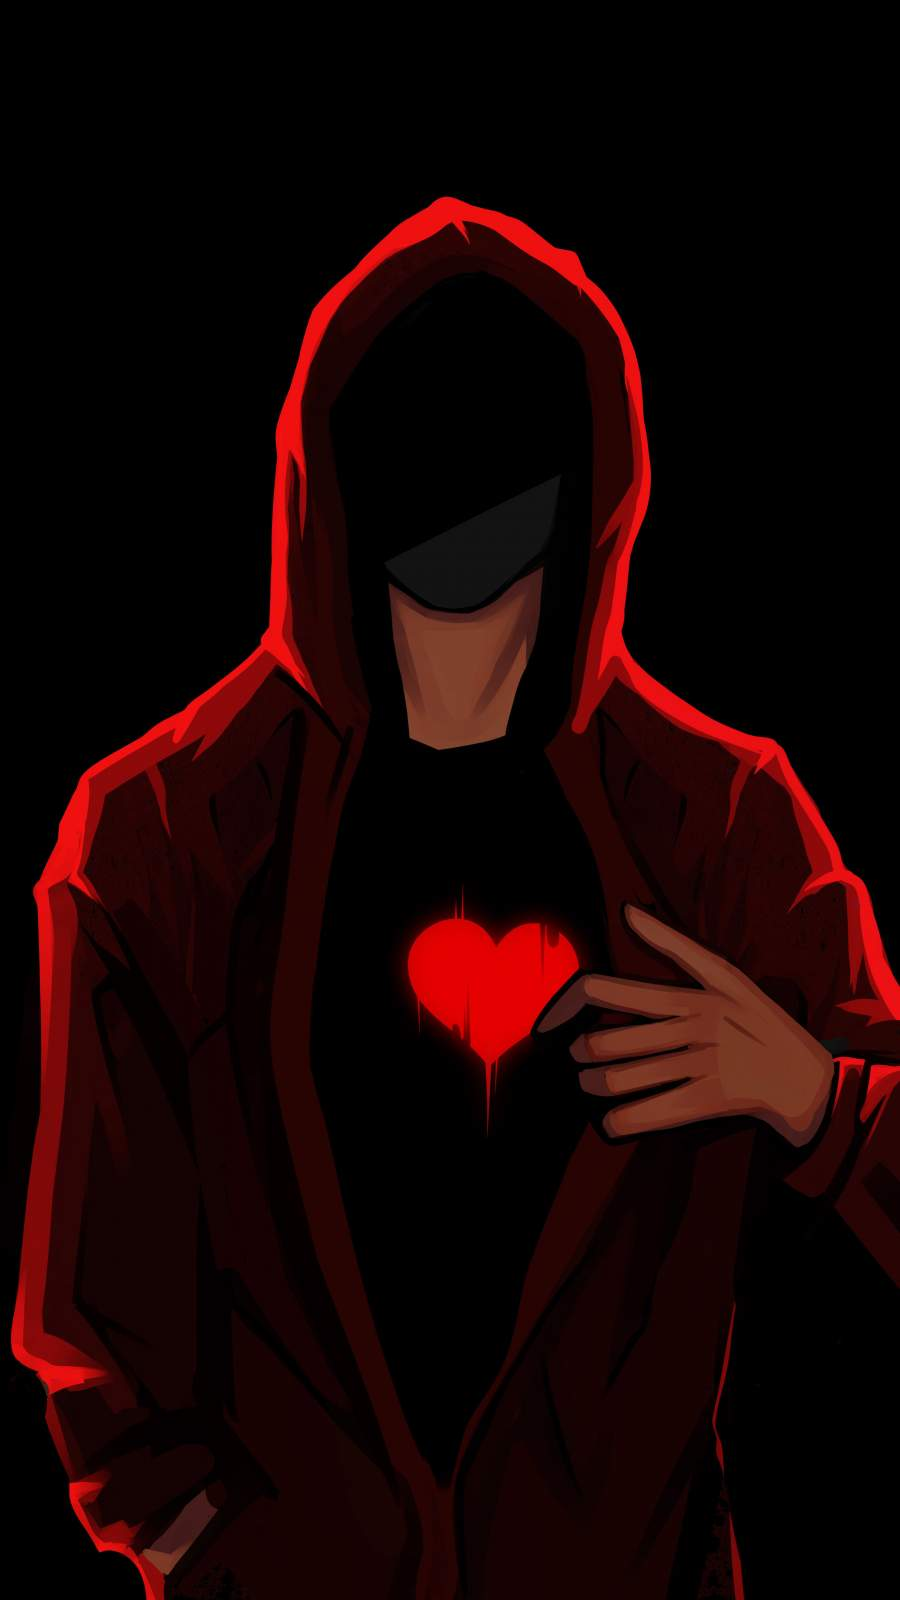 Hoodie Guy with Heart